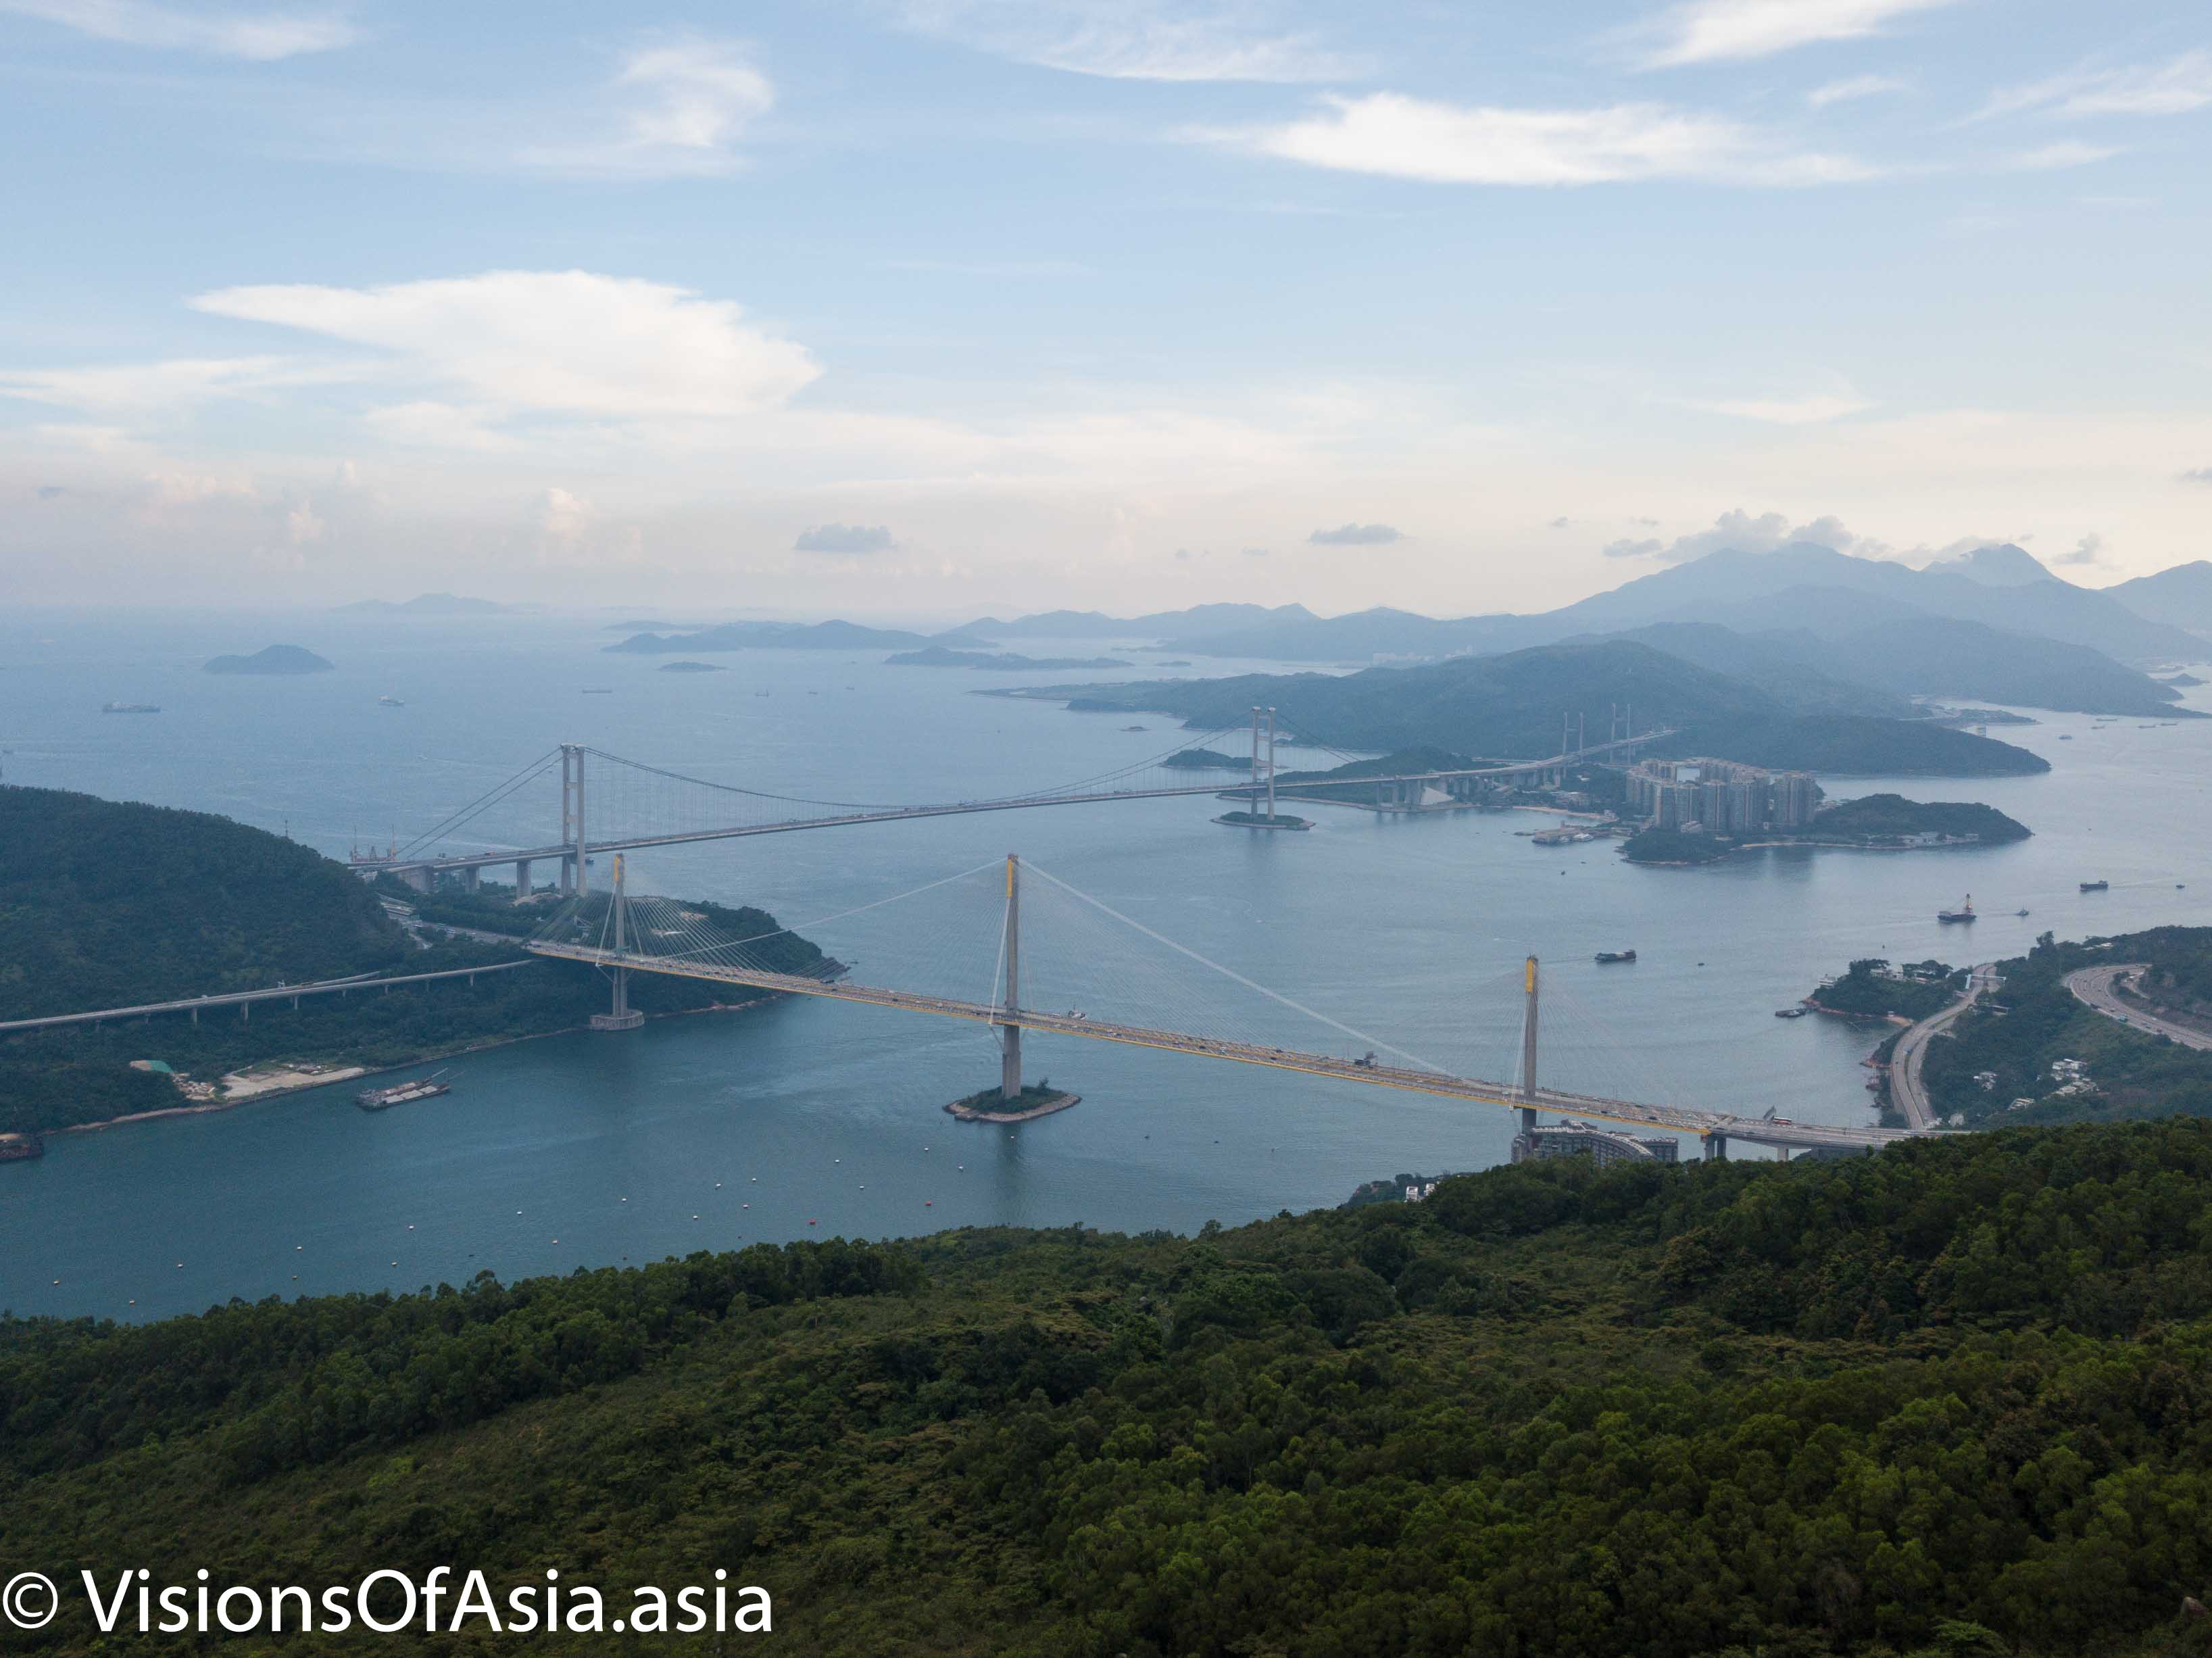 View on the Tsing Ma bridge